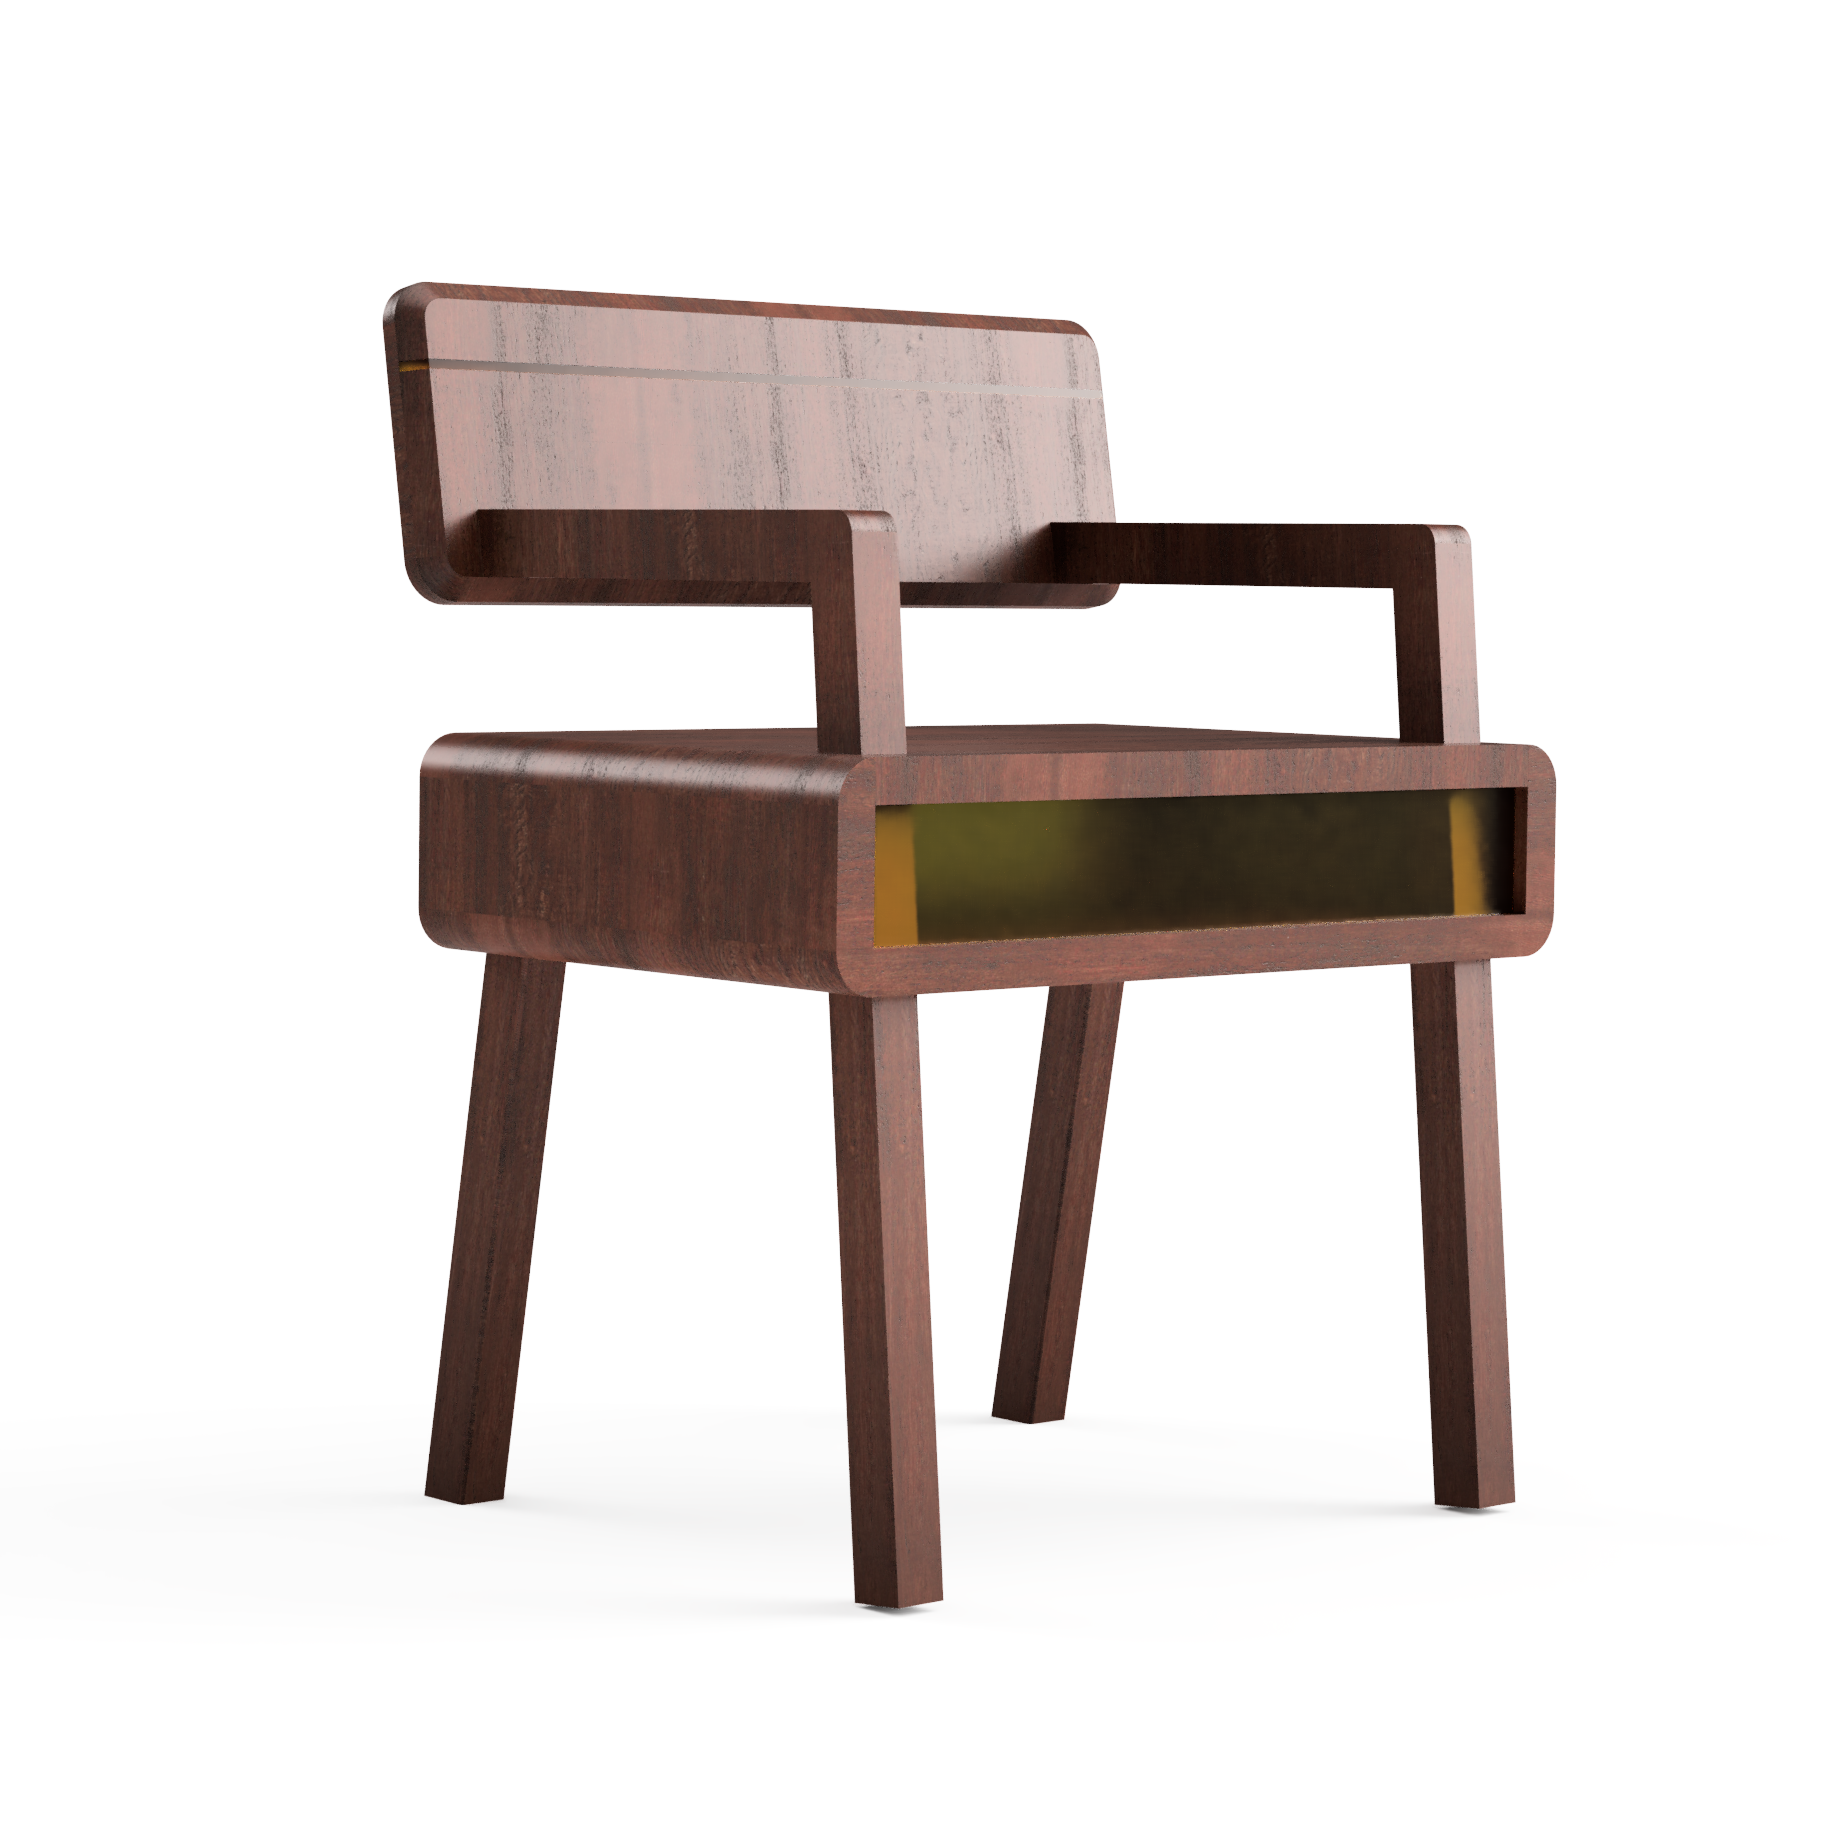 chair5.png